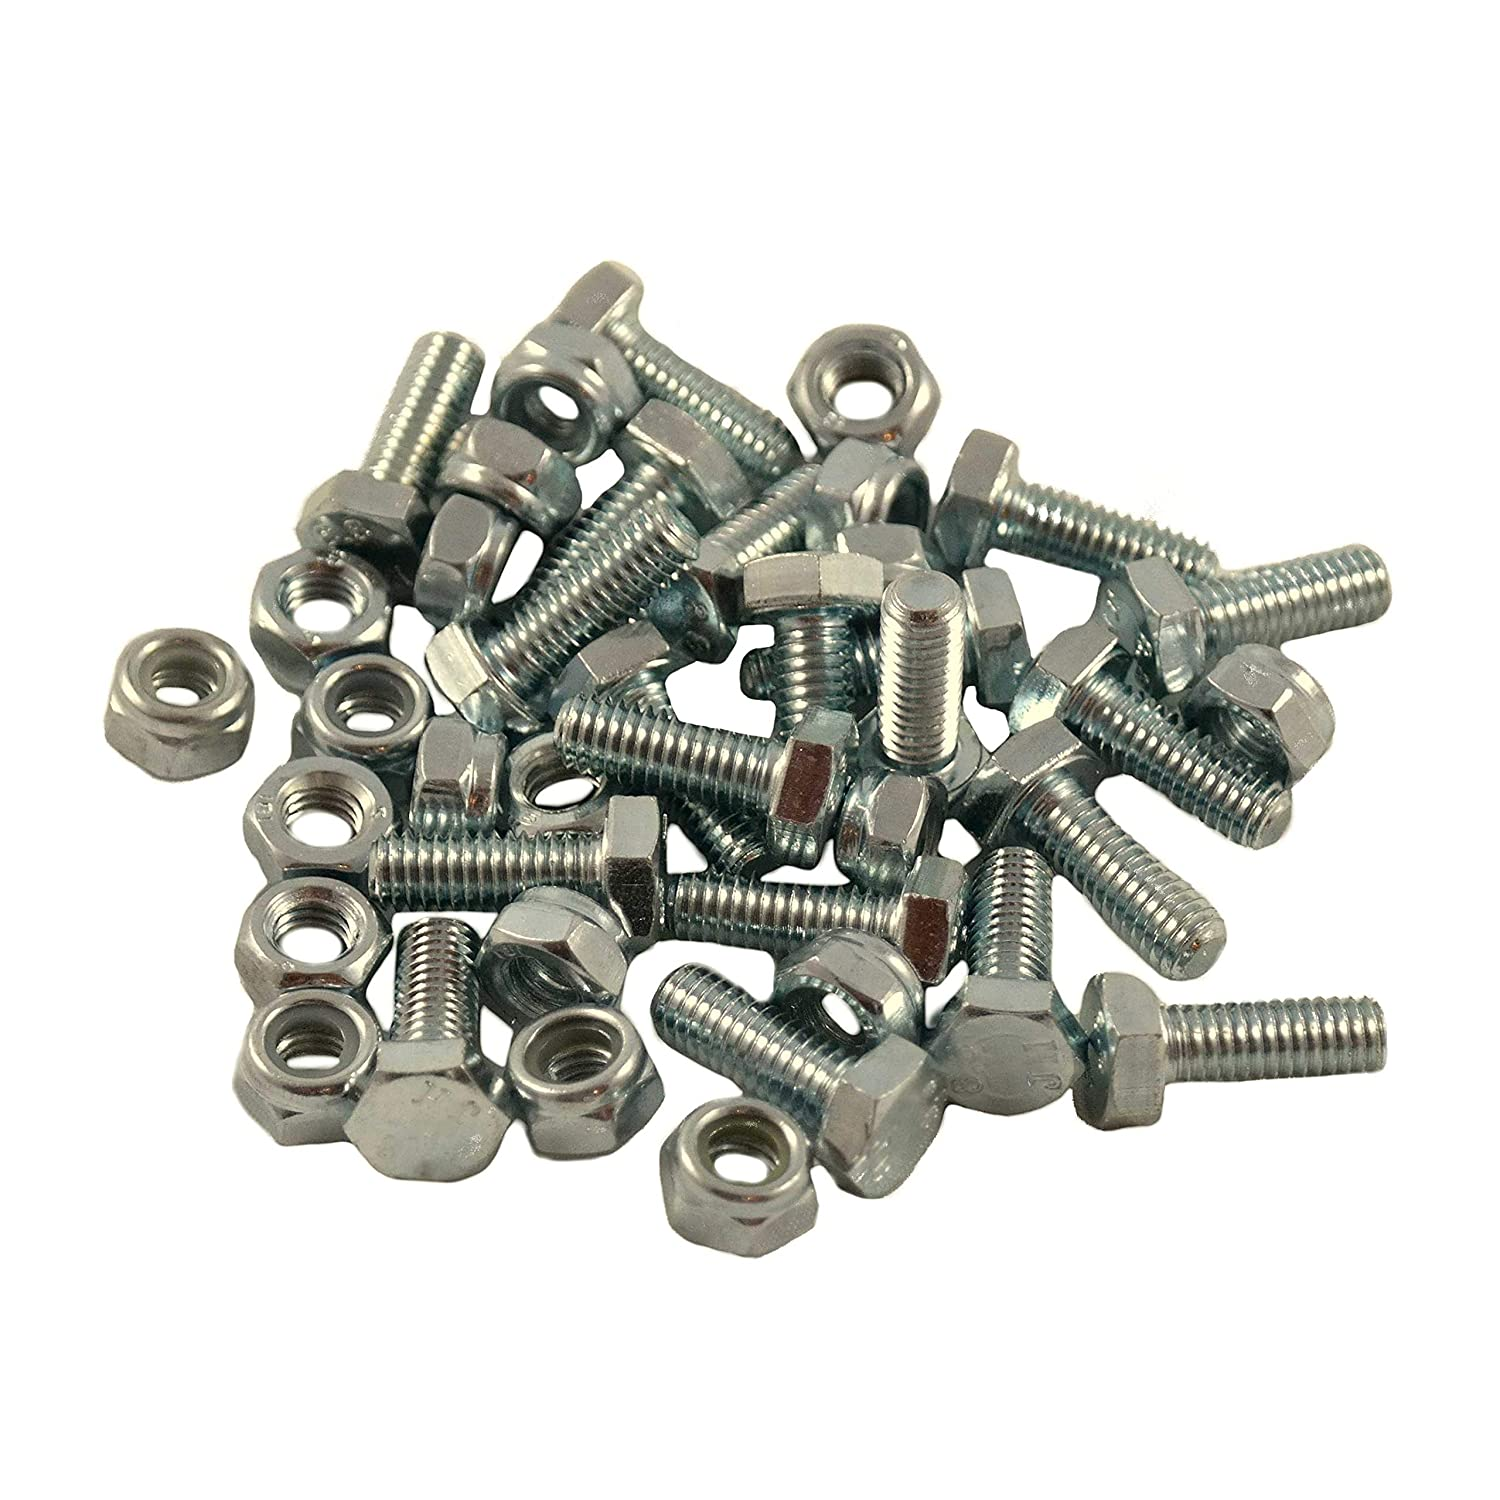 SpeedFreakCNC 20pcs Auger Shear Pins Bolts & Nuts Honda HS1132 HS624 HS828 HS928 HS724 & New HSS Series 724, 928, 1332